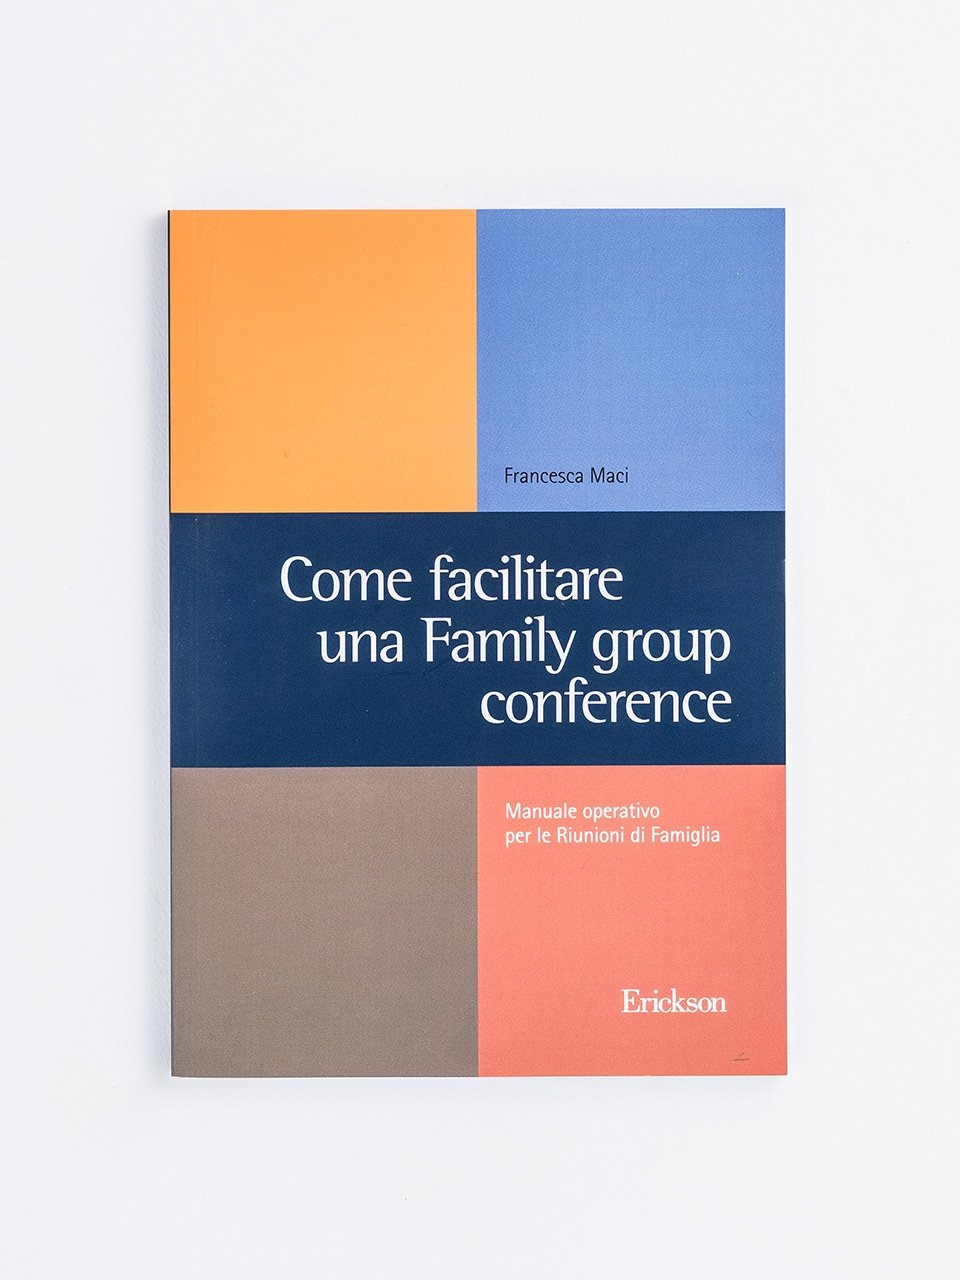 Come facilitare una Family group conference - Il piacere di imparare - Libri - Erickson